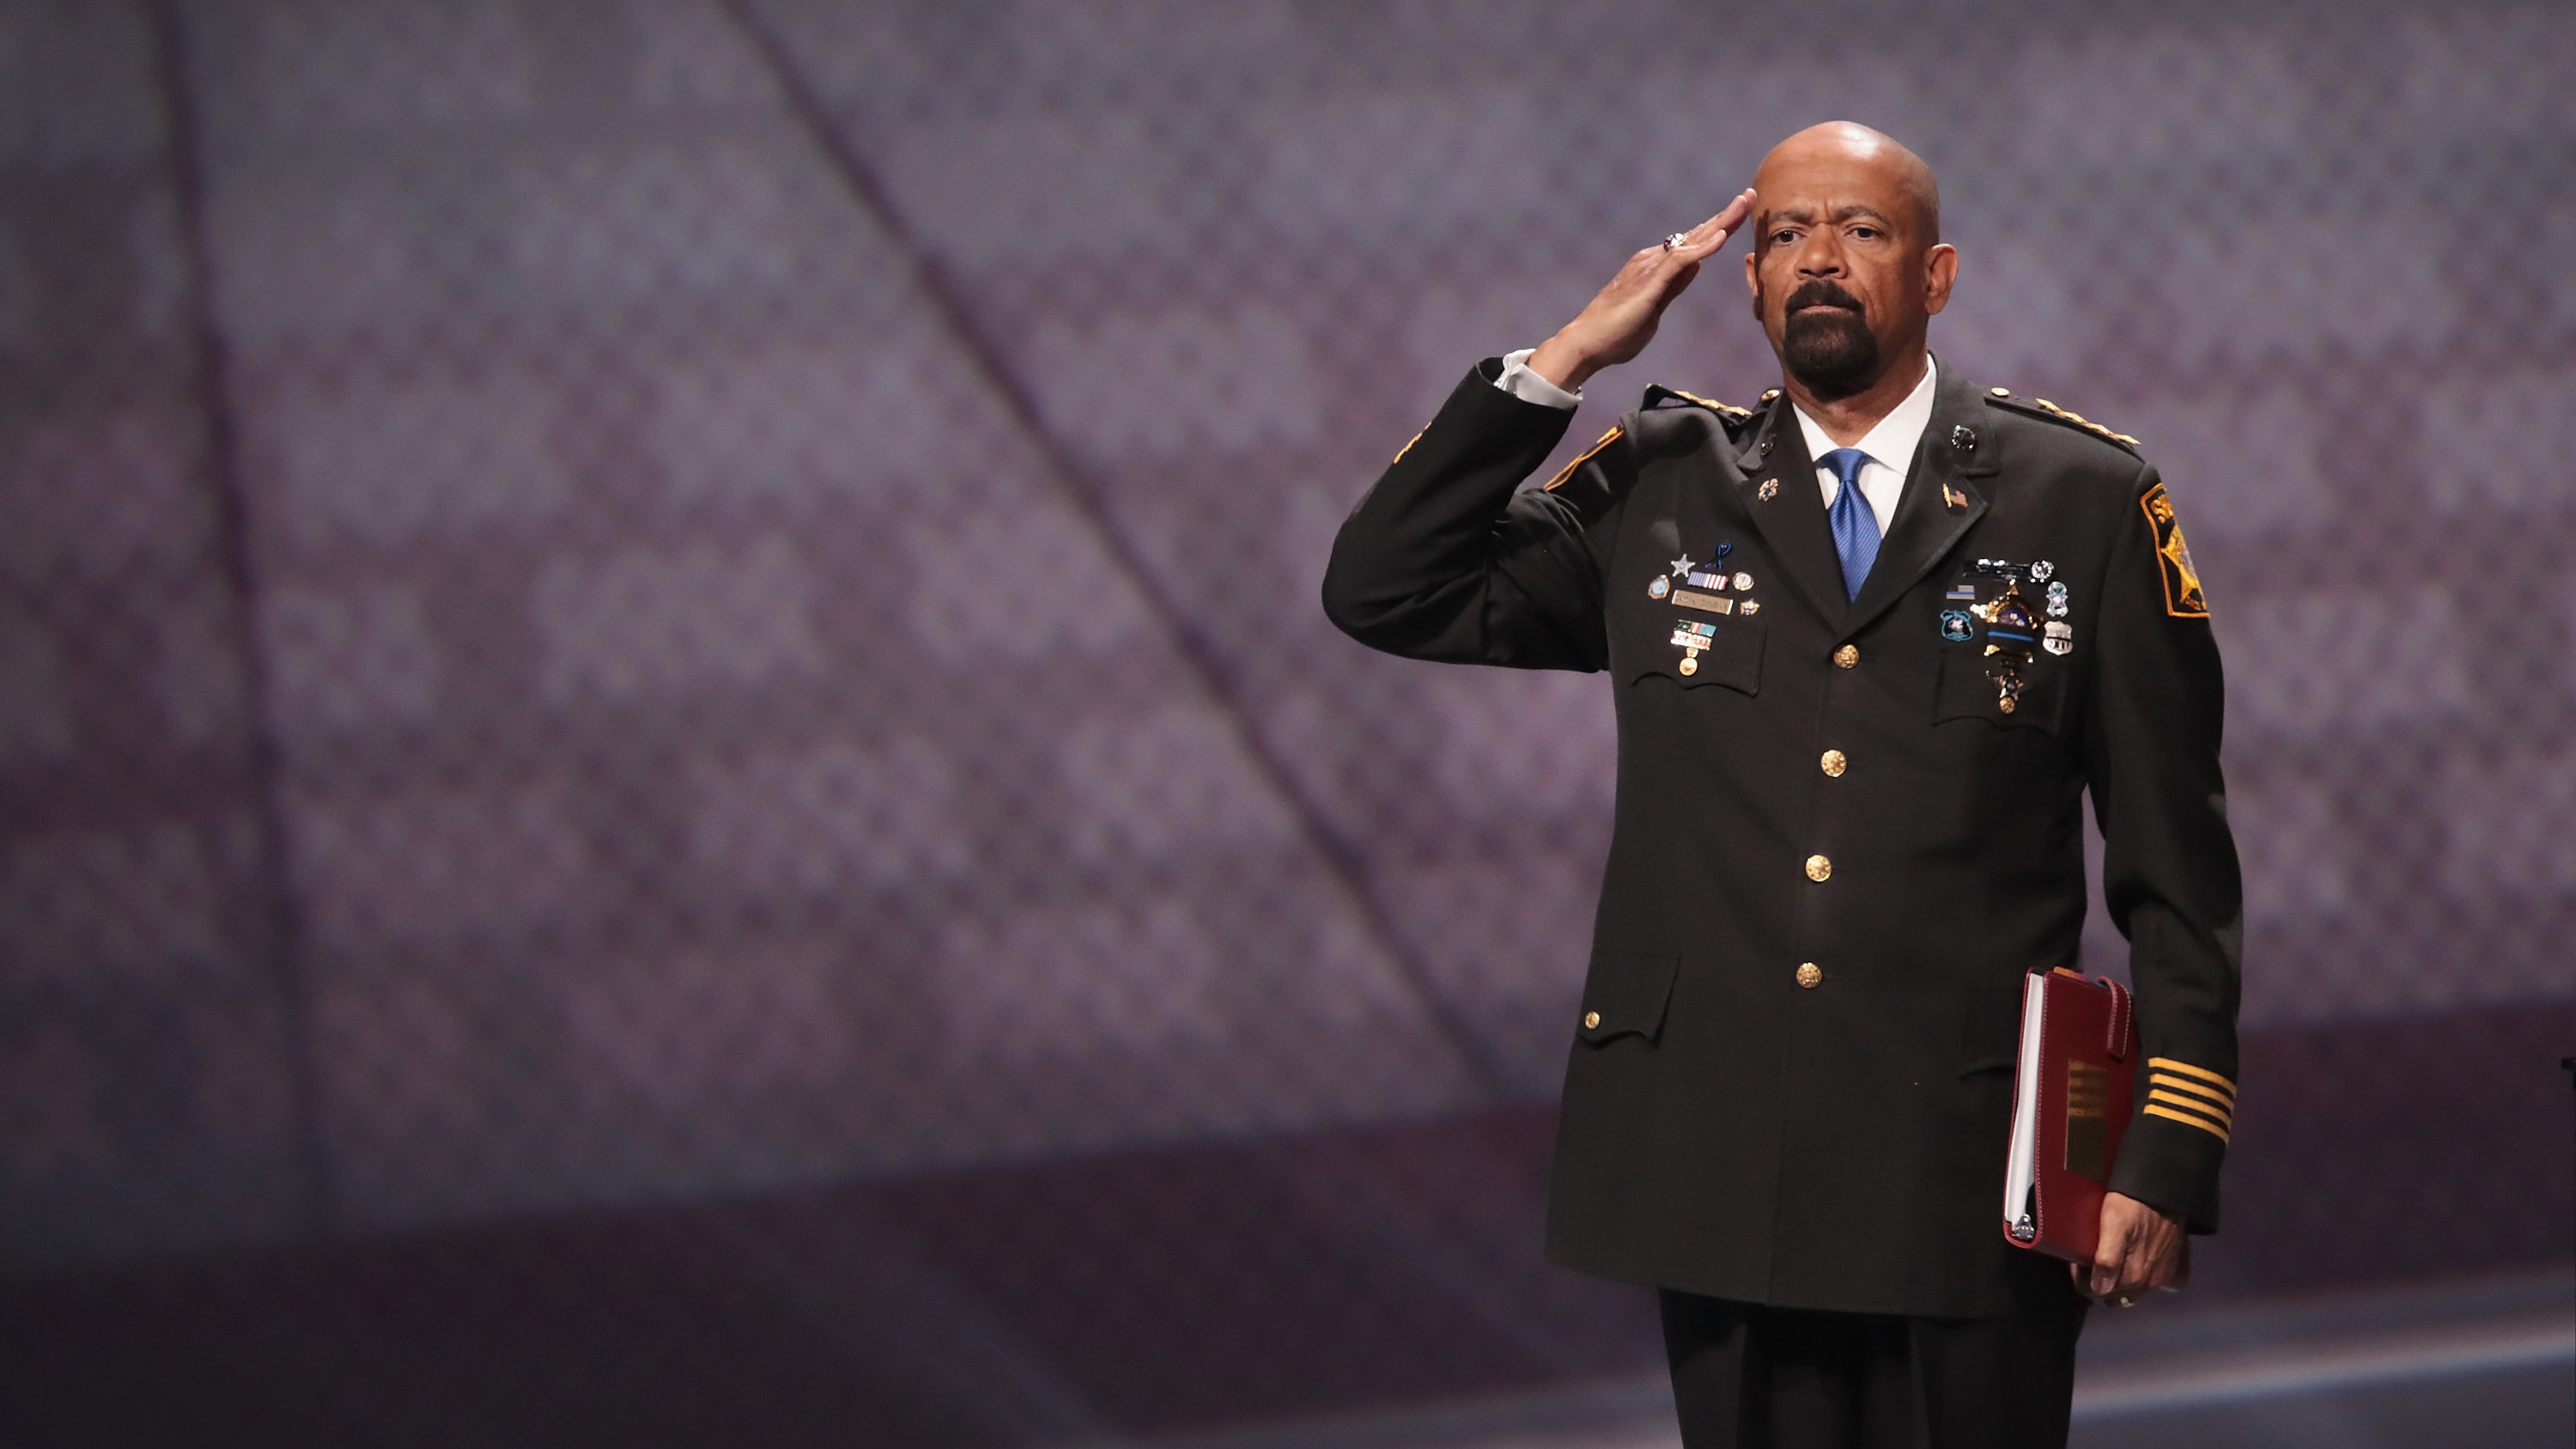 Controversial Wisconsin Sheriff David Clarke resigns